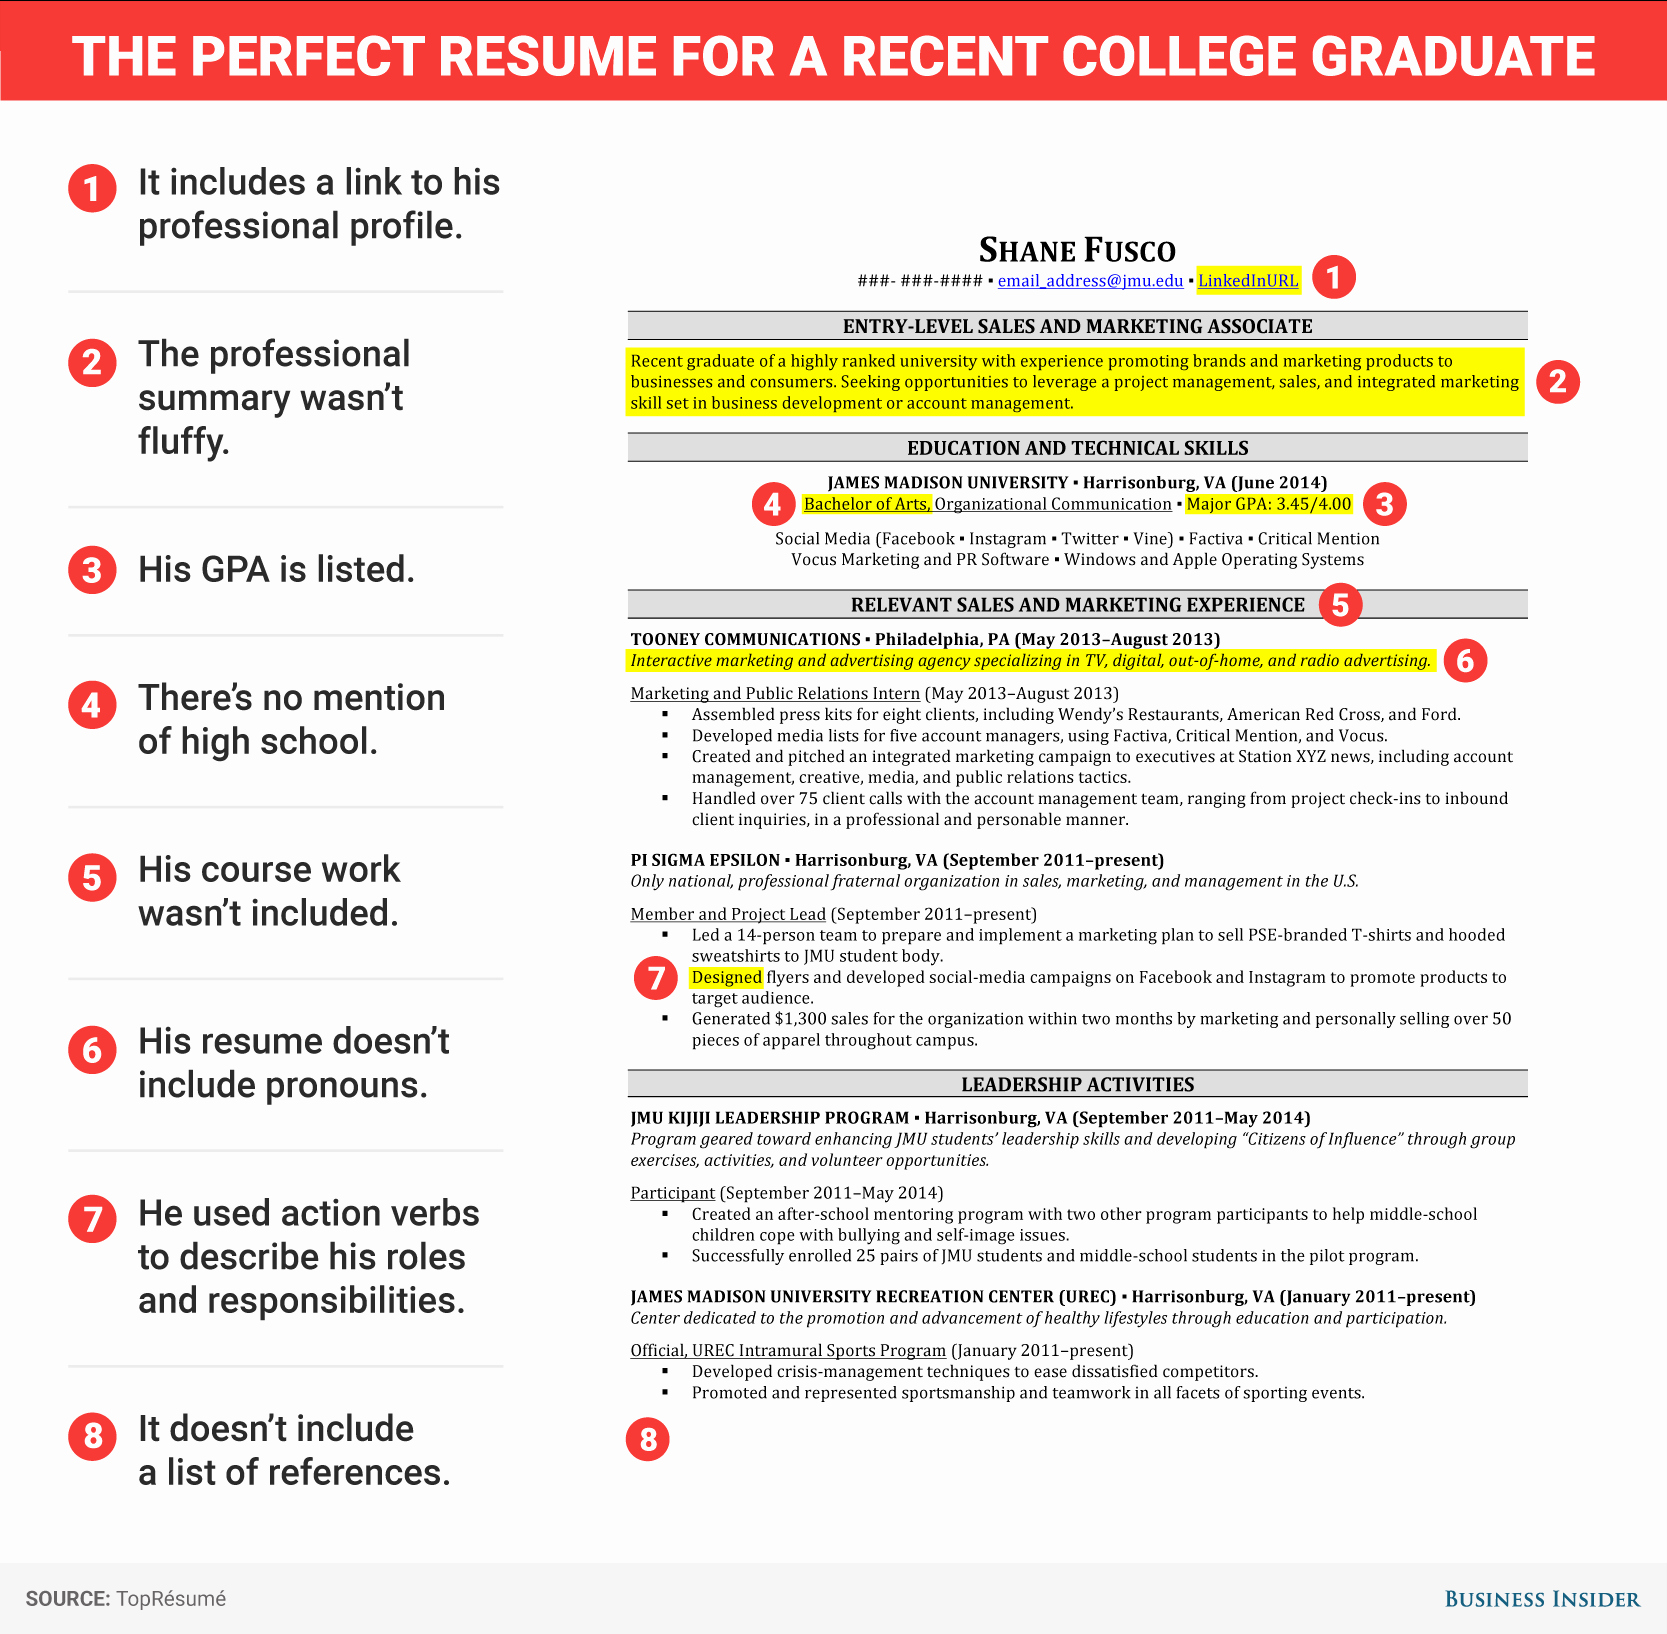 Resume for Recent College Grad Fresh Excellent Resume for Recent College Grad Business Insider